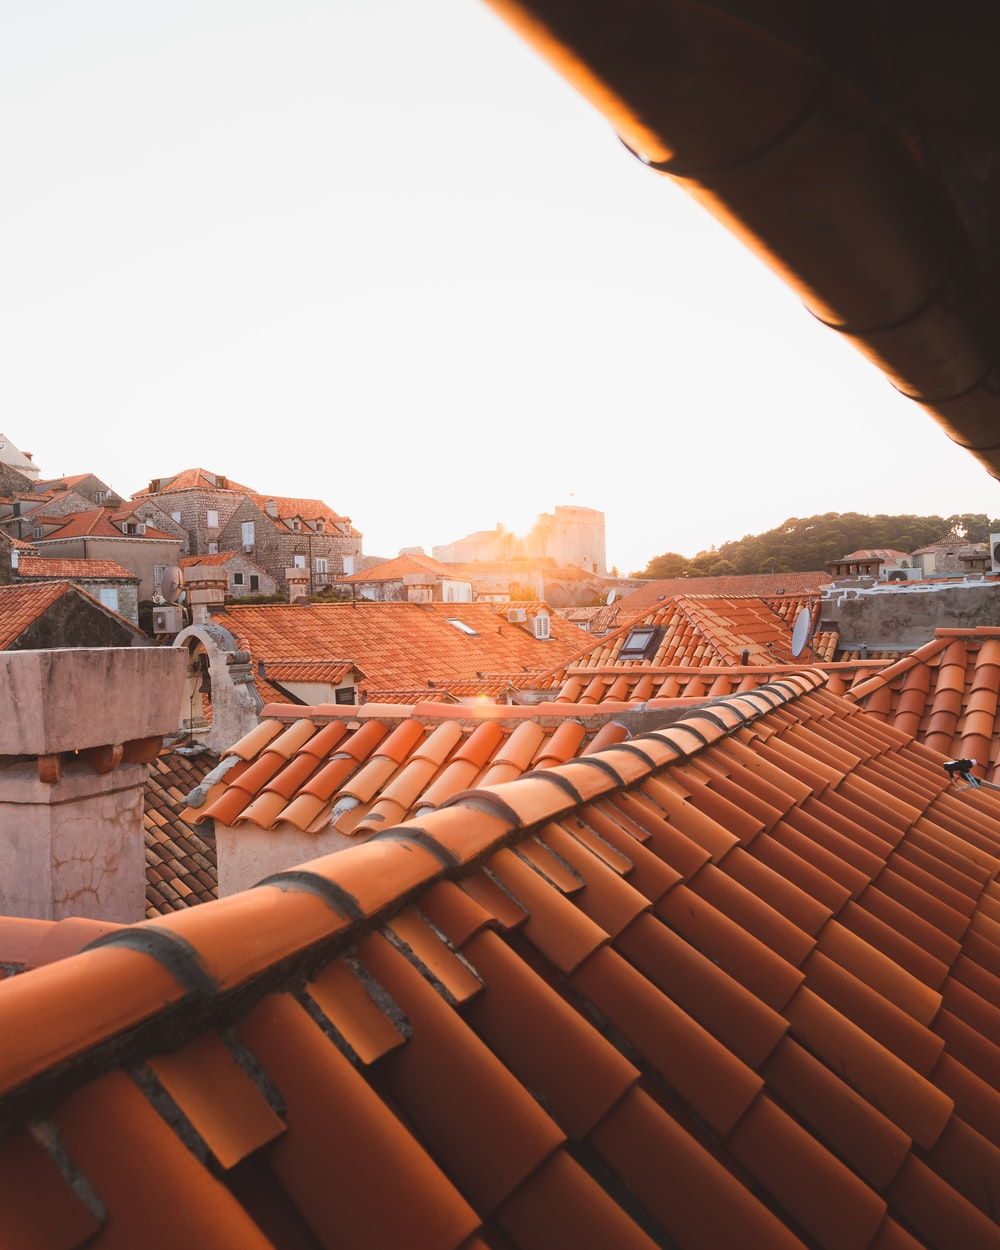 brown roof tiles during daytime